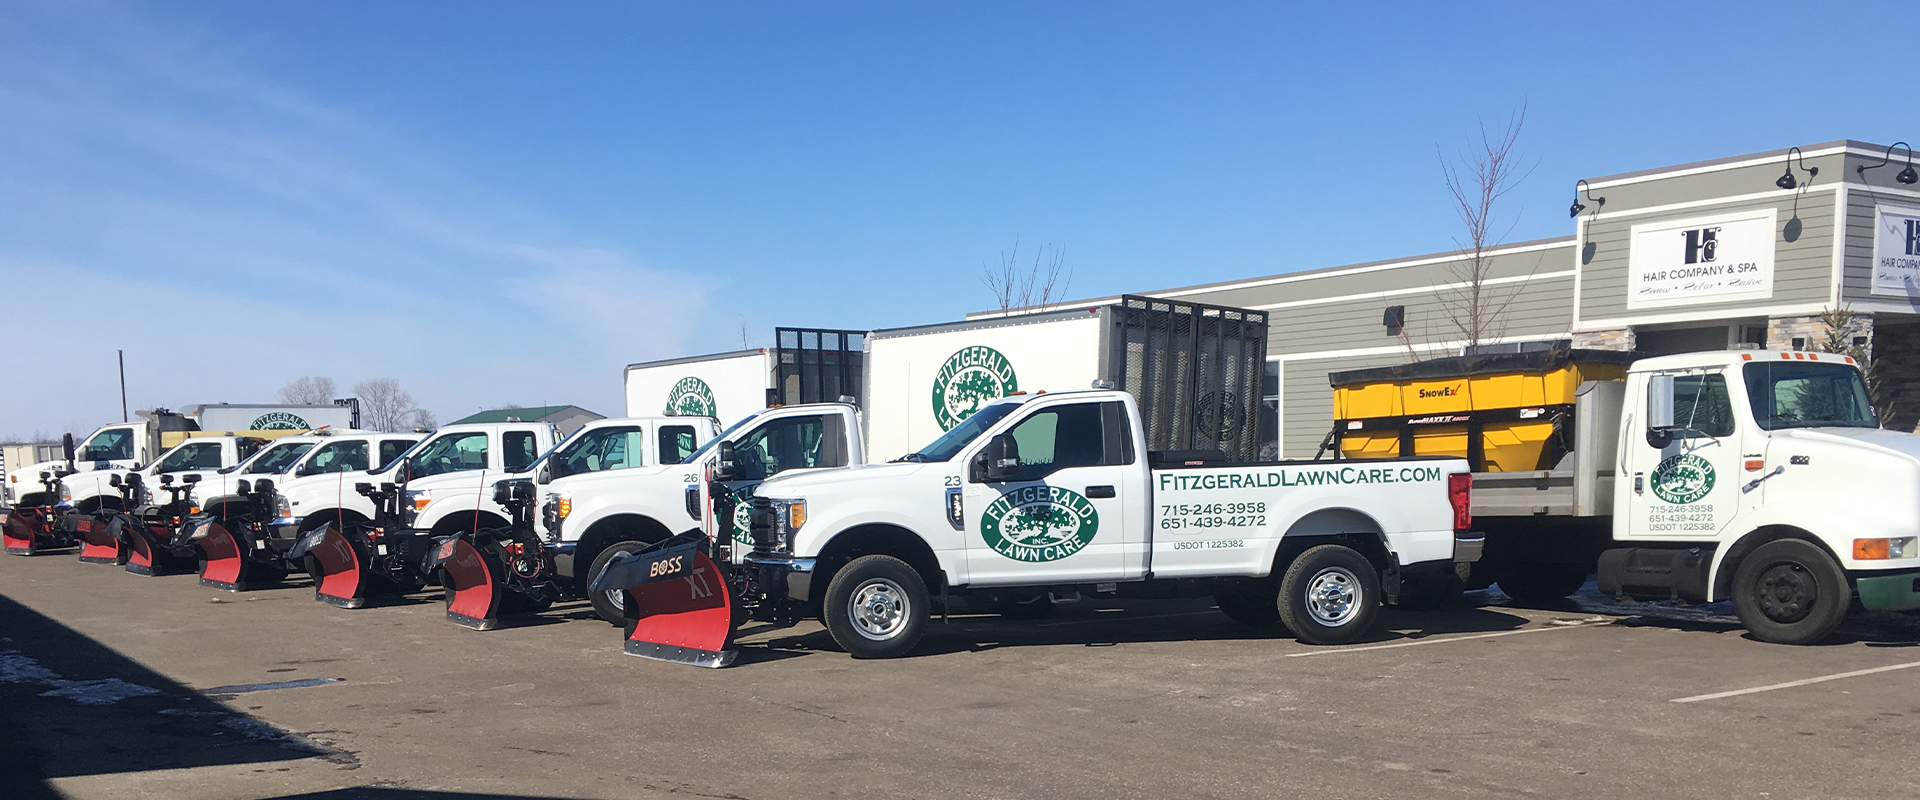 Snow Plowing & Snow Removal Services